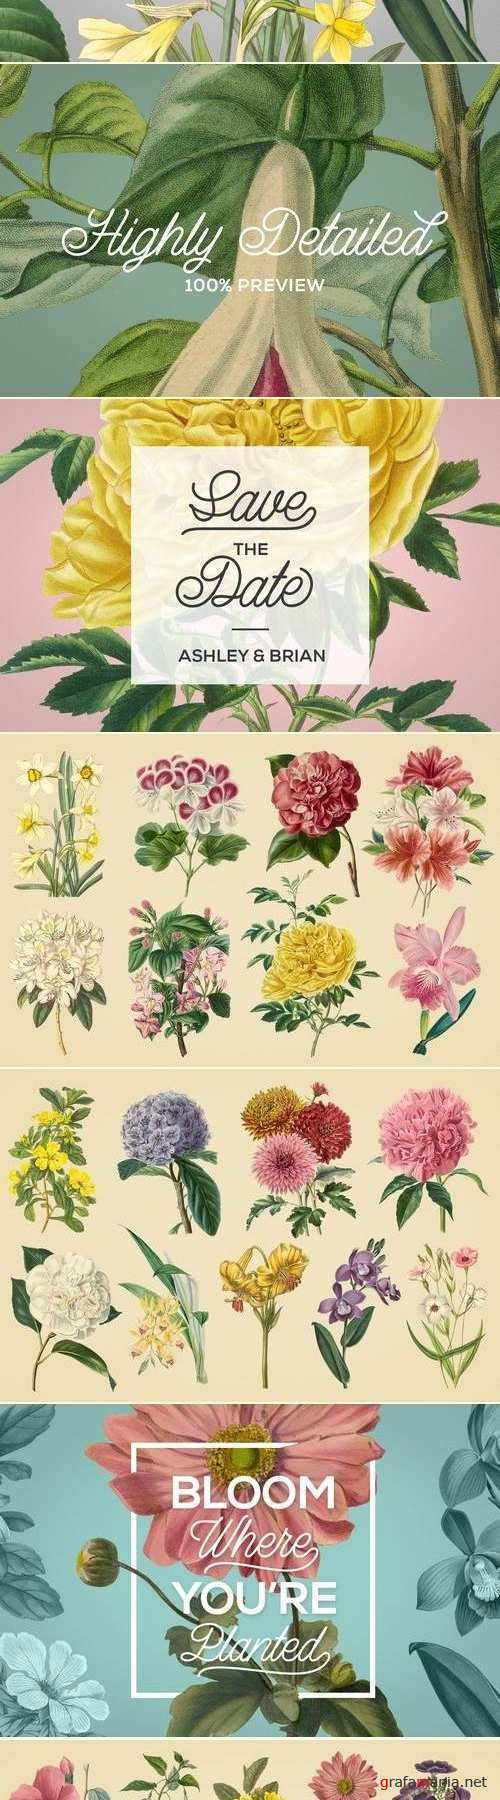 Vintage Illustrations of Flowers - 2448014